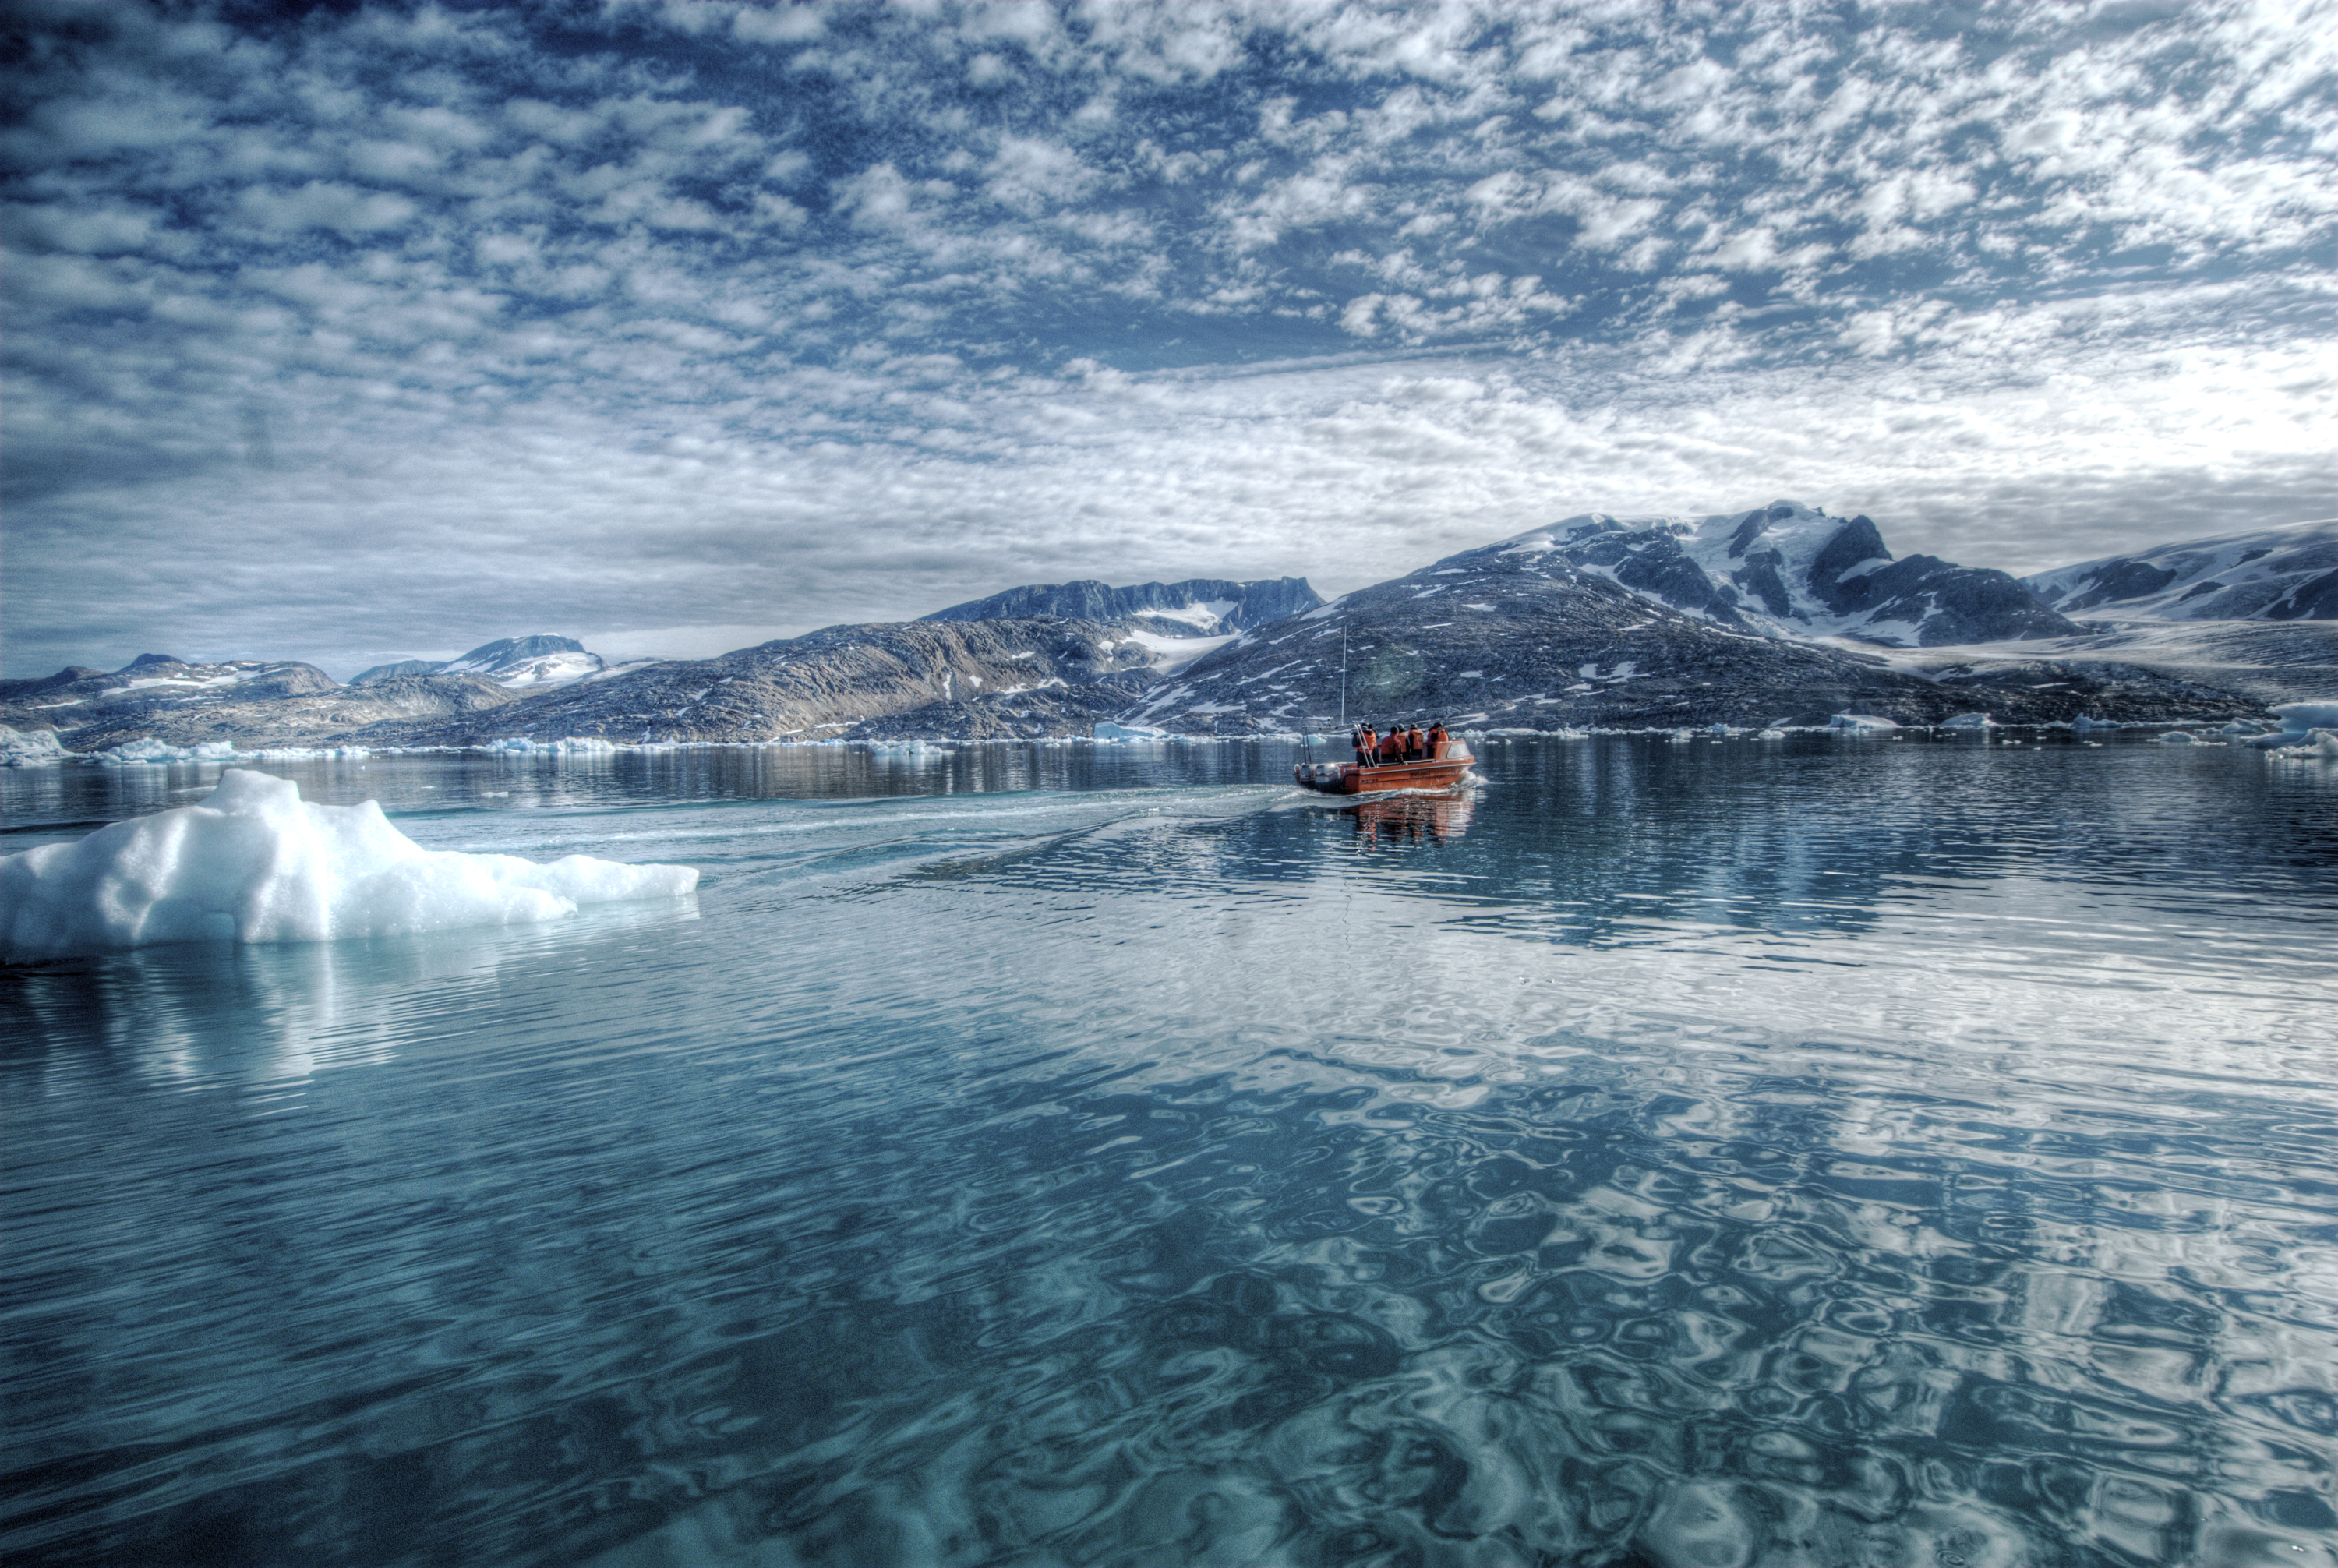 greenland offers icy adventures to travelers